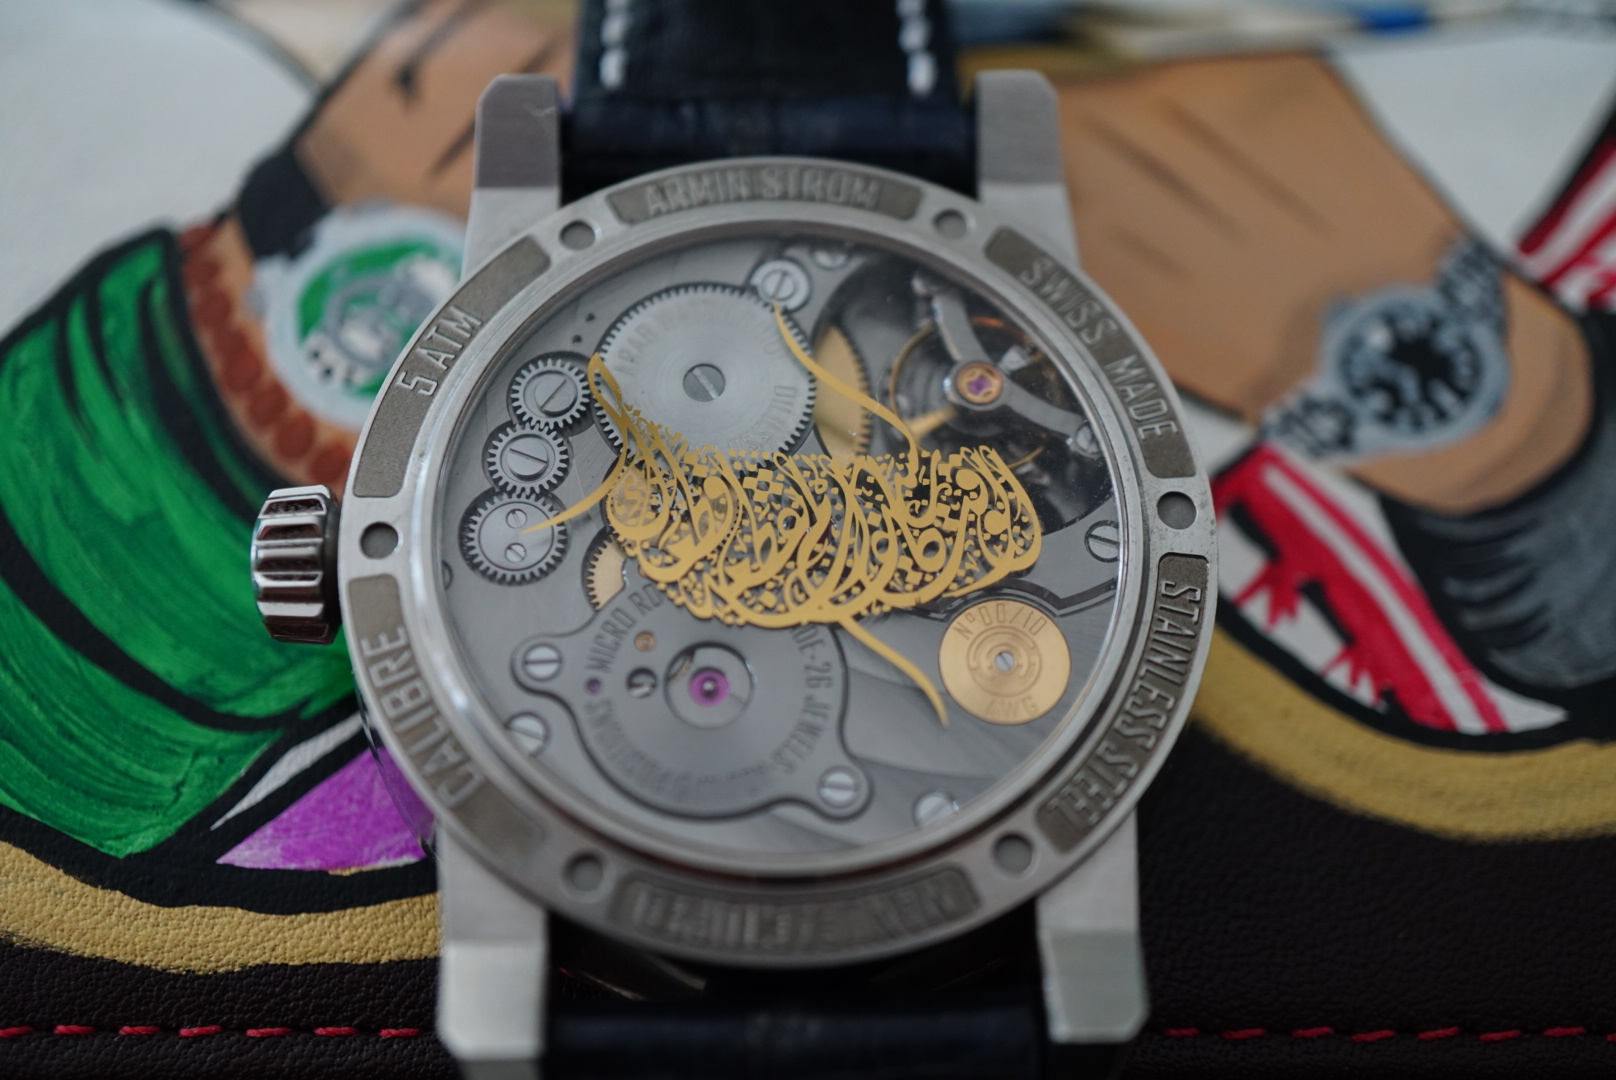 INTRODUCING THE ARMINSTROM GRAVITY ARAB WATCH CLUB EDITION 3